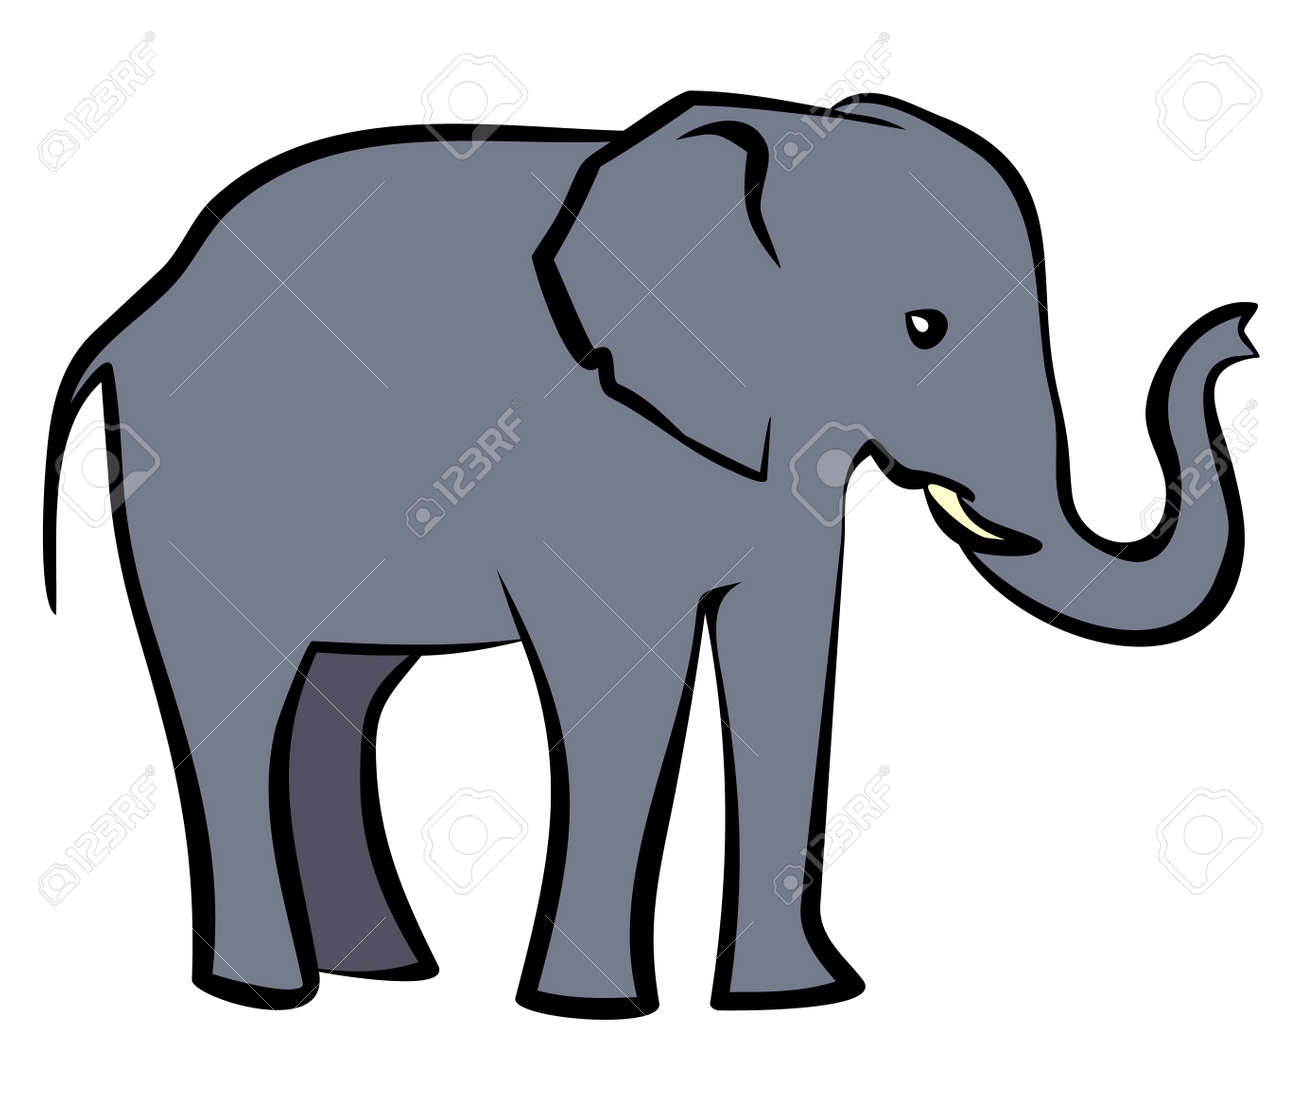 baby elephant vector illustration royalty free cliparts vectors rh 123rf com elephant vector art elephant vector images